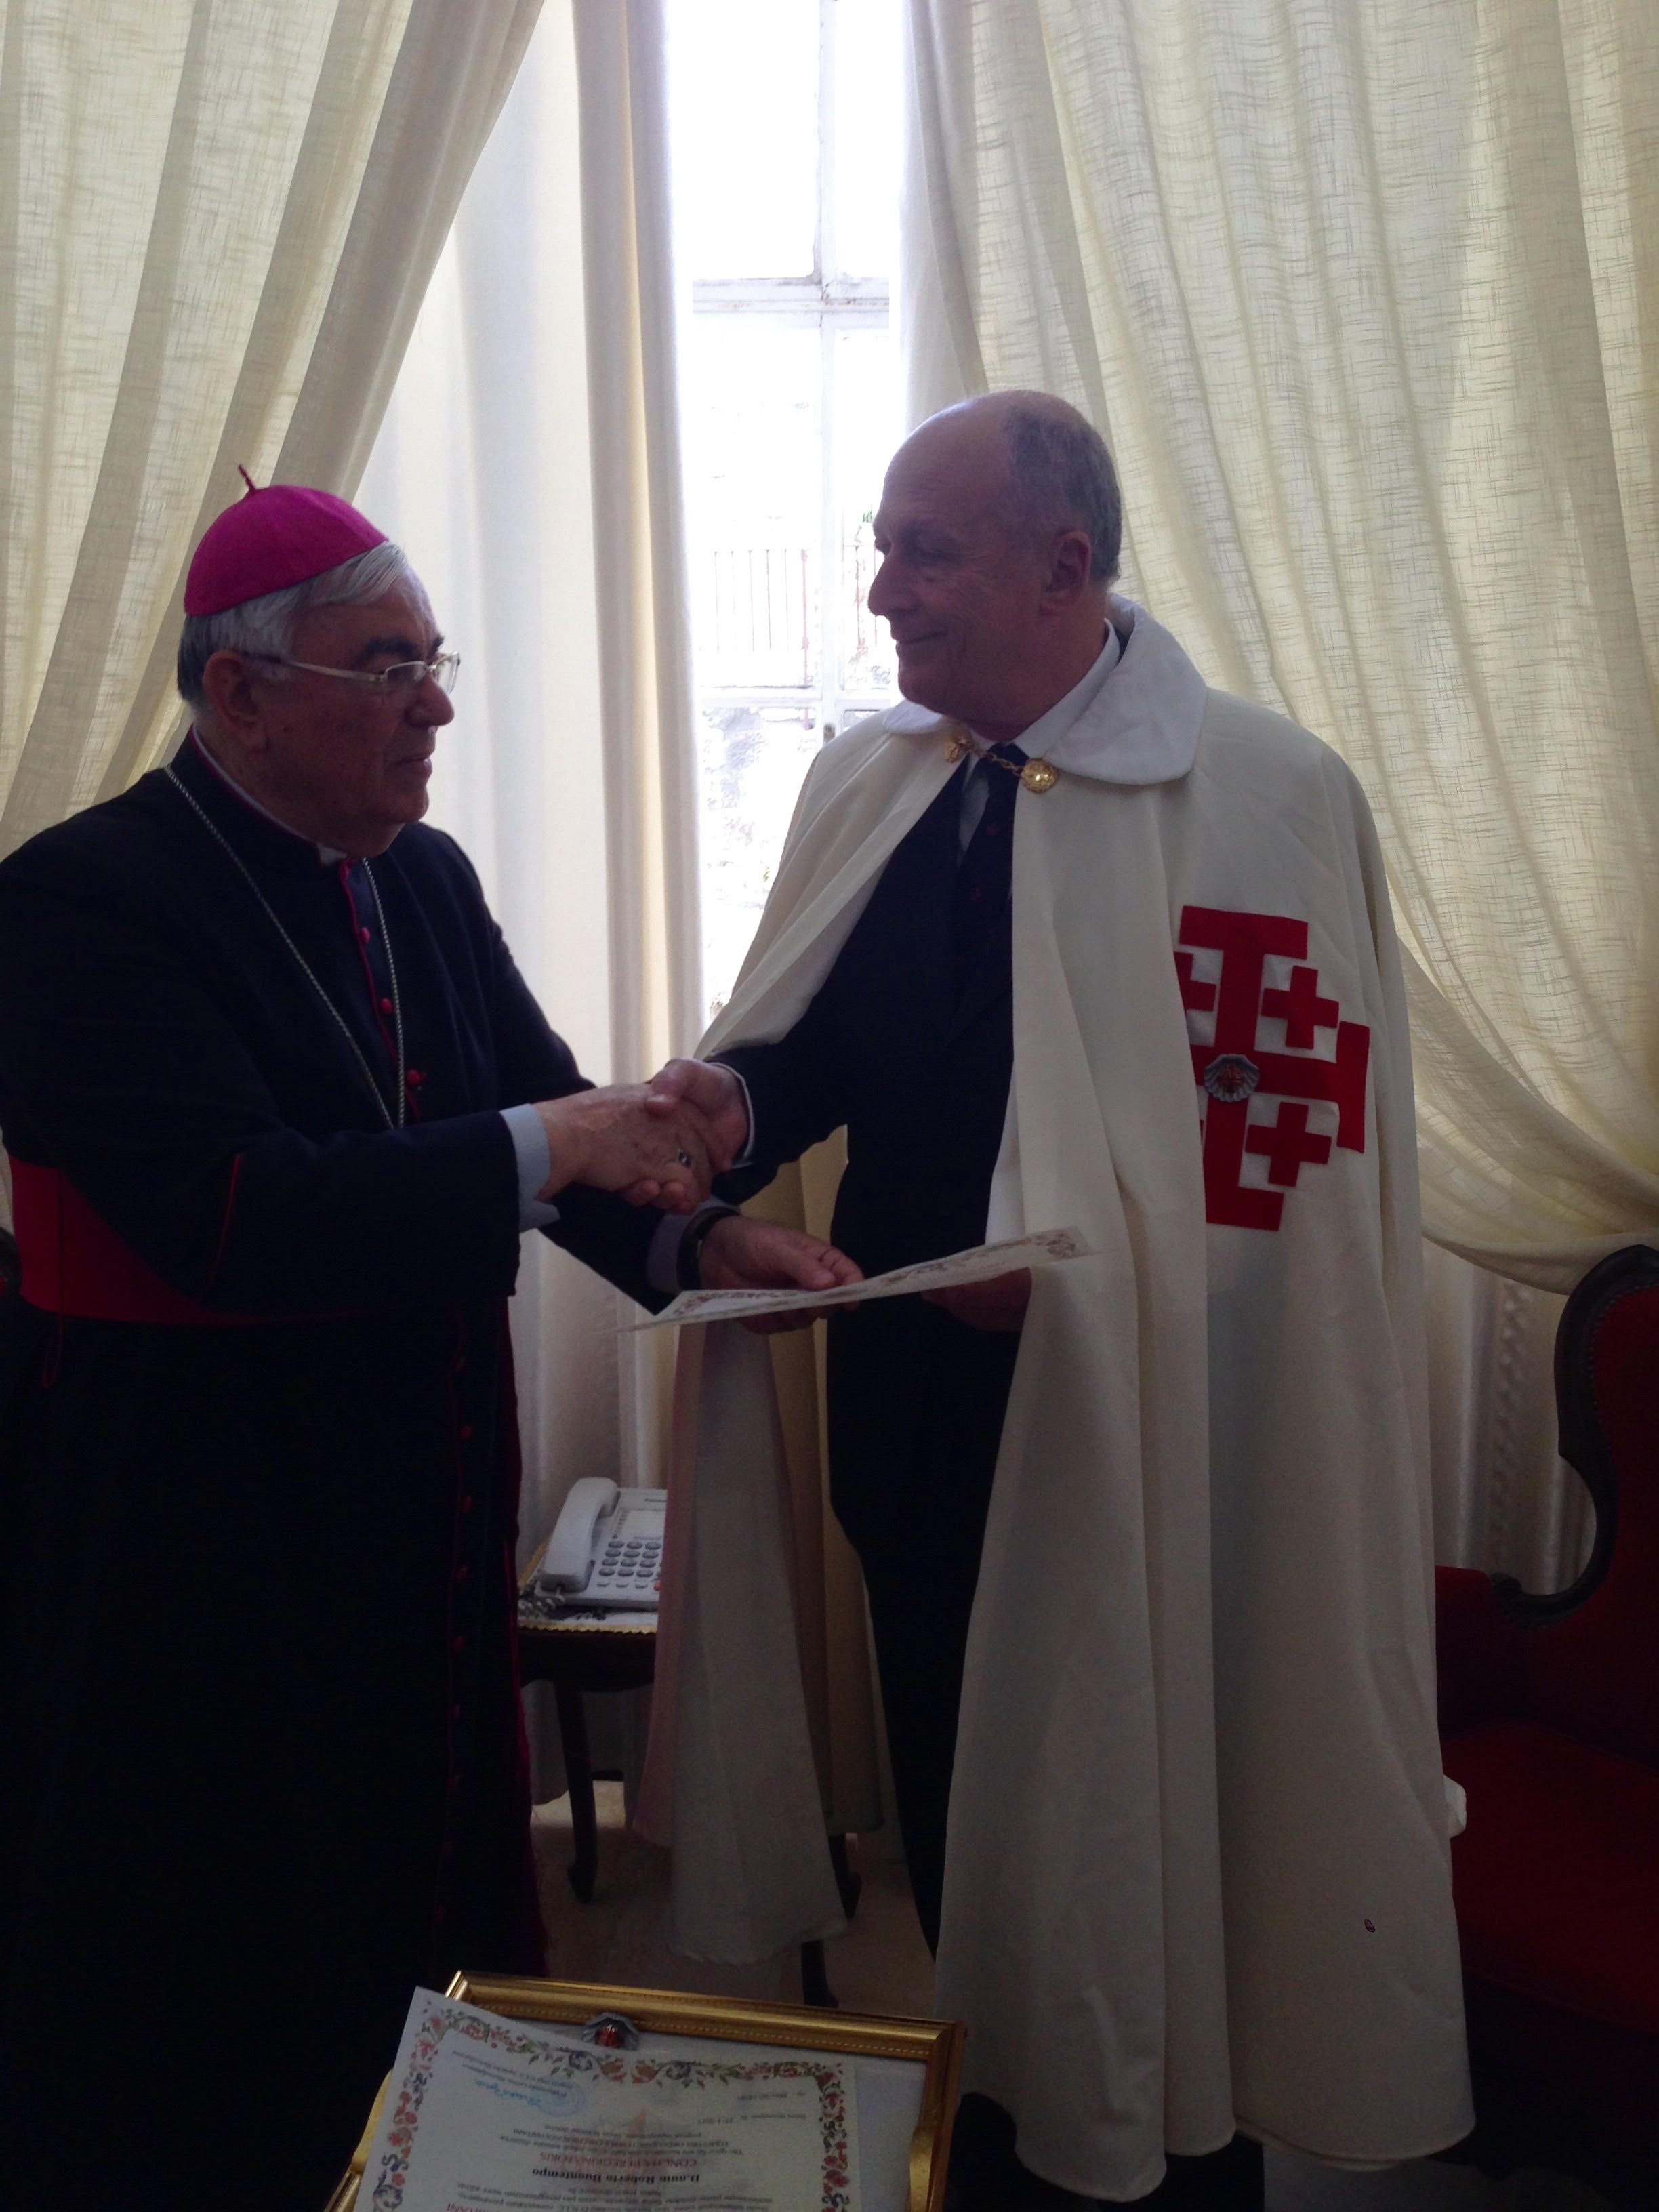 The Bishop Vicar of Nazareth, Mgr. Giacinto Boulos Marcuzzo, presenting the Pilgrim certificate to H.E. Eric Fenech Pace, Lieutenant for Malta